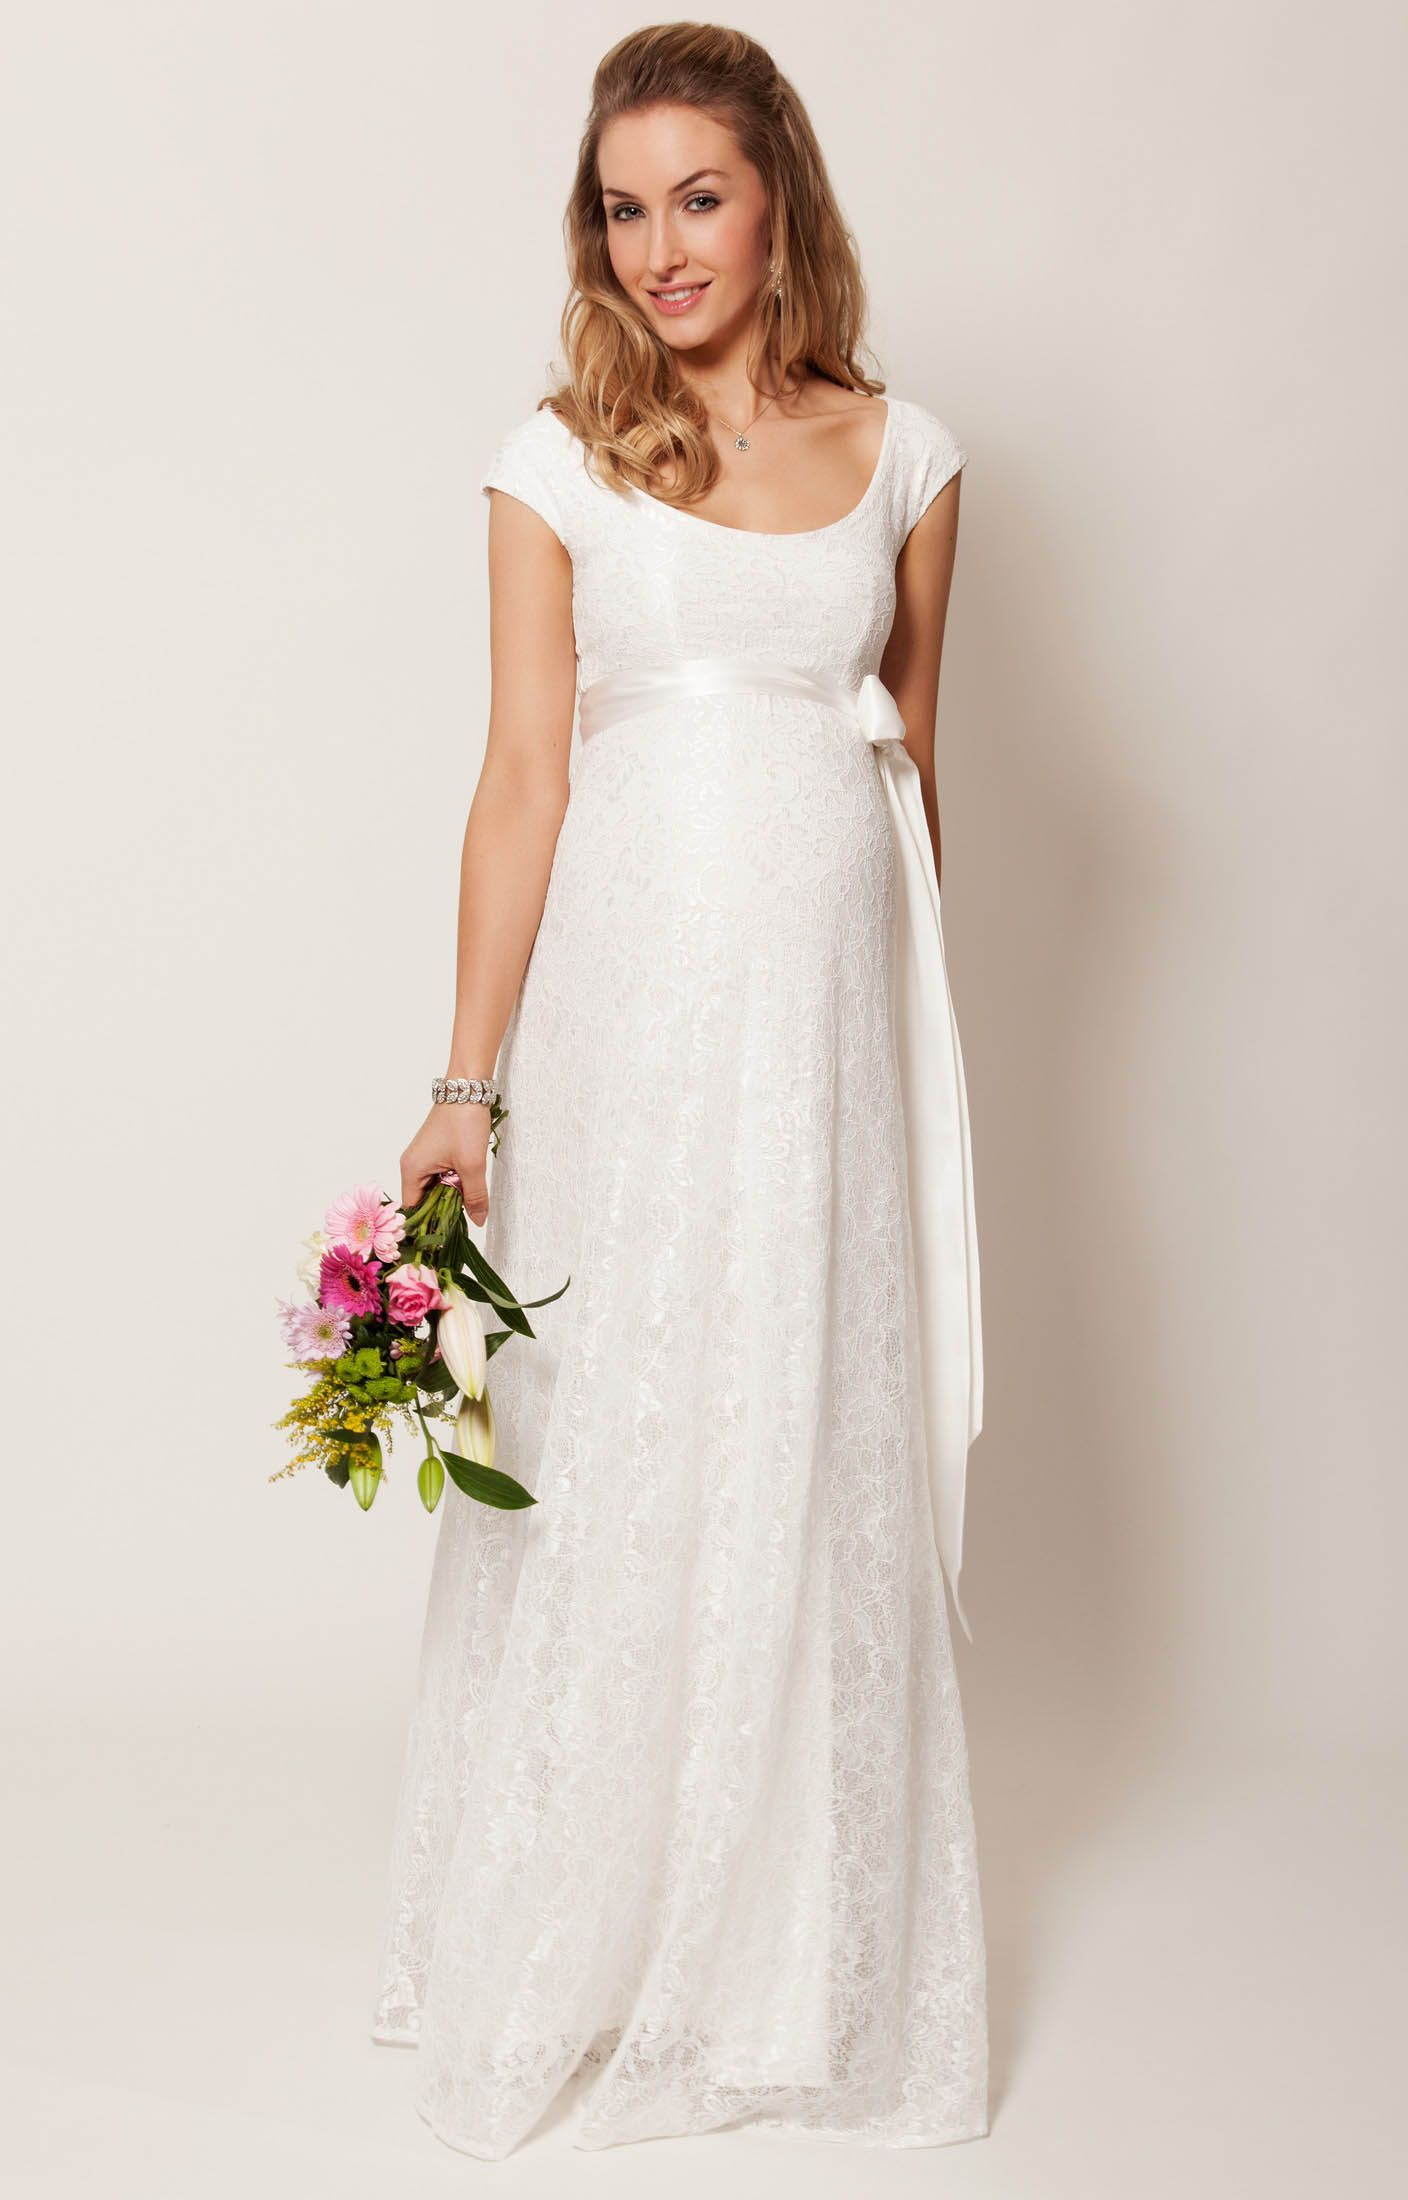 Silhouette wedding dresses simple bridal  Eliza Gown Long  Tiffany rose Gowns and Weddings